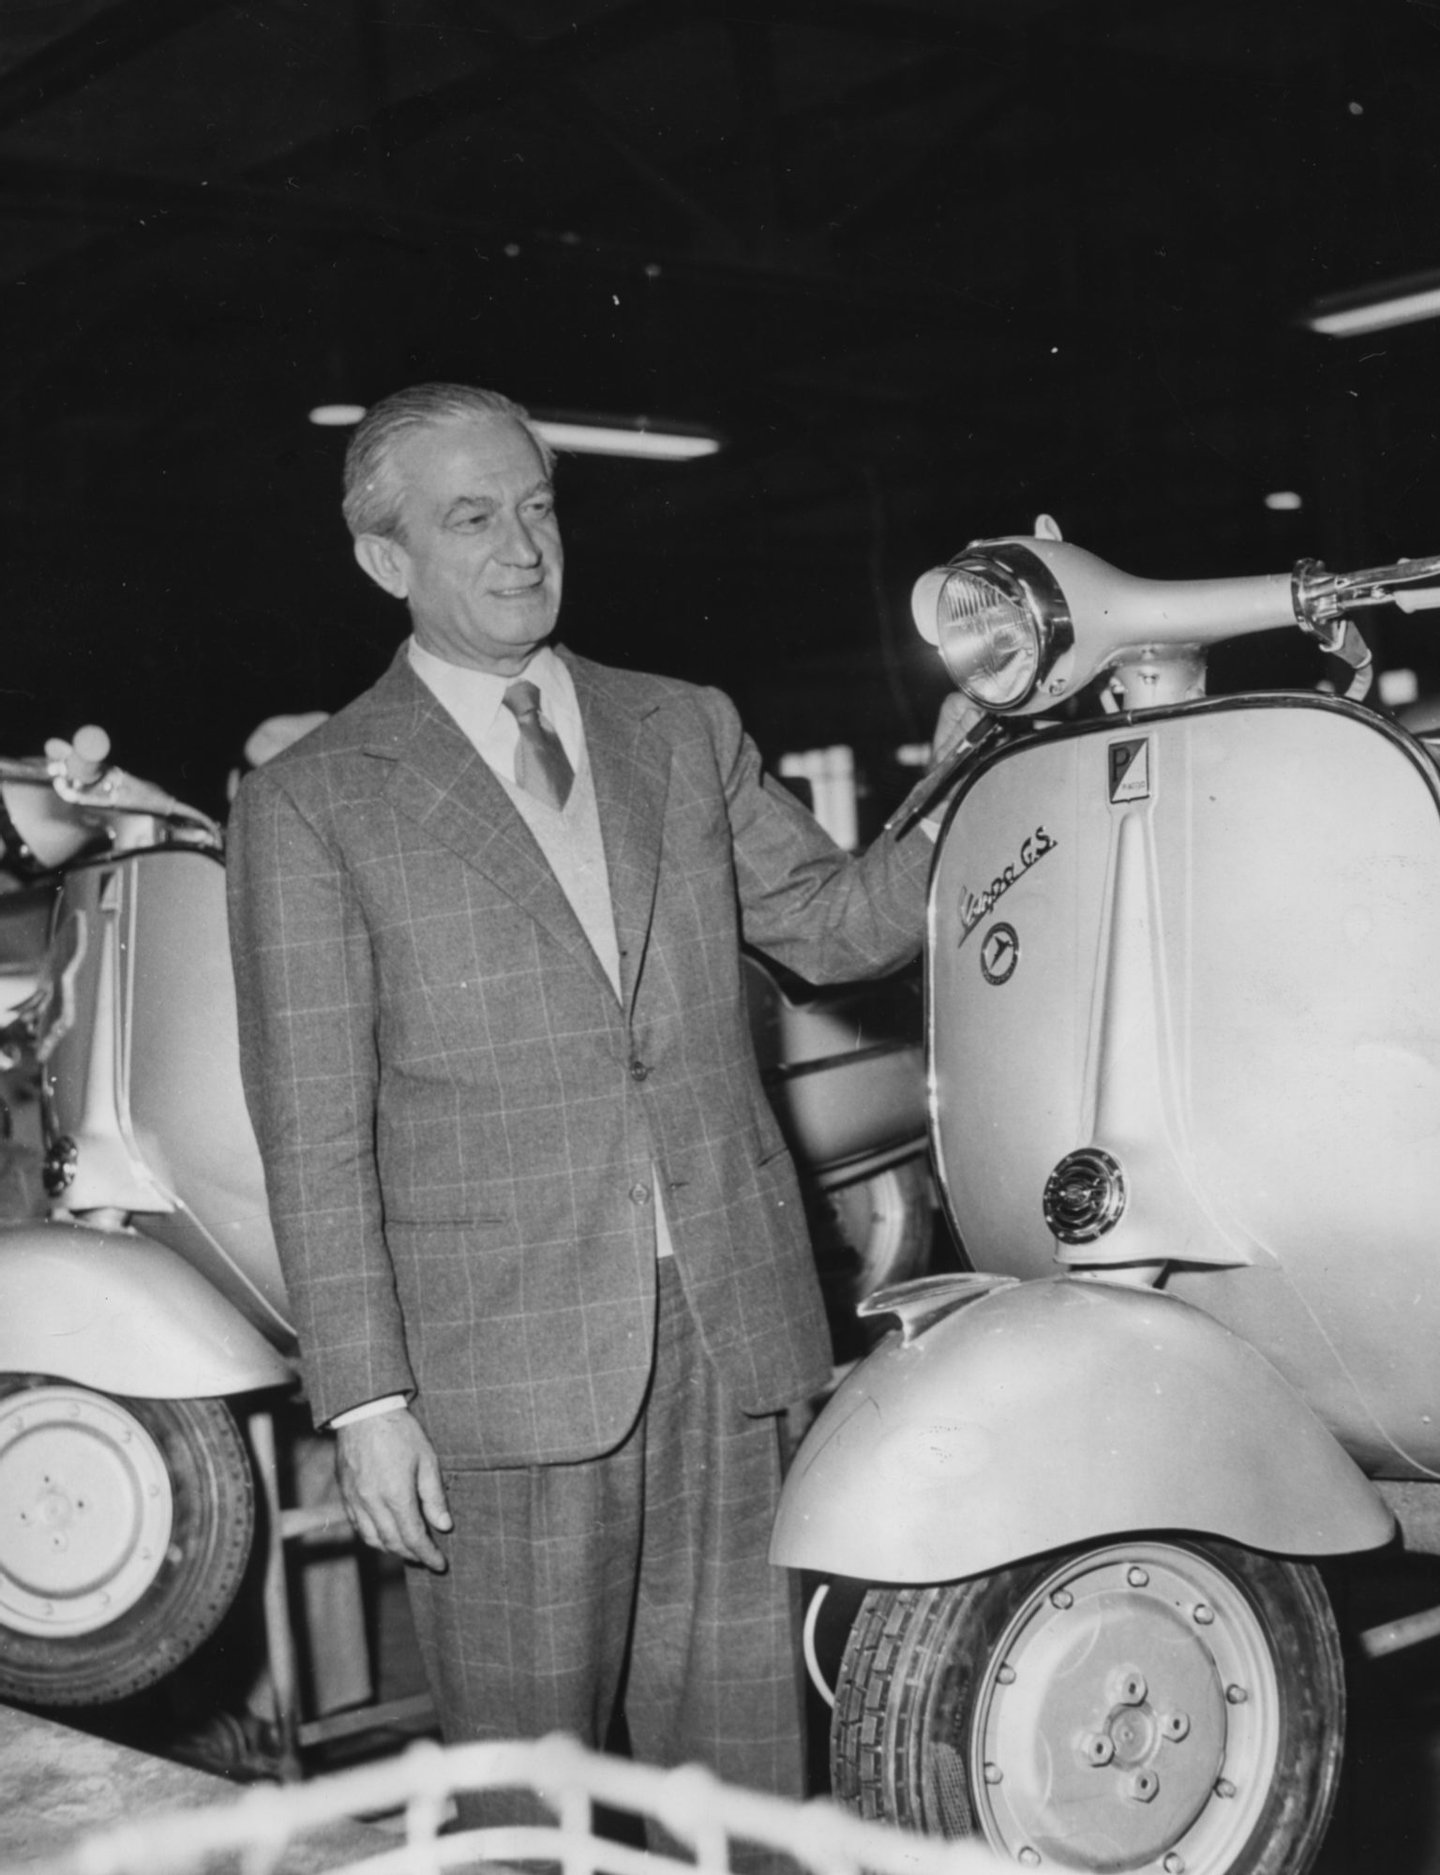 Italian industrialist Enrico Piaggio, manufacturer of Vespa scooters, pictured with one of the motor scooters at a Messerschmitt factory, Germany, October 2nd 1956. (Photo by Keystone Features/Hulton Archive/Getty Images)